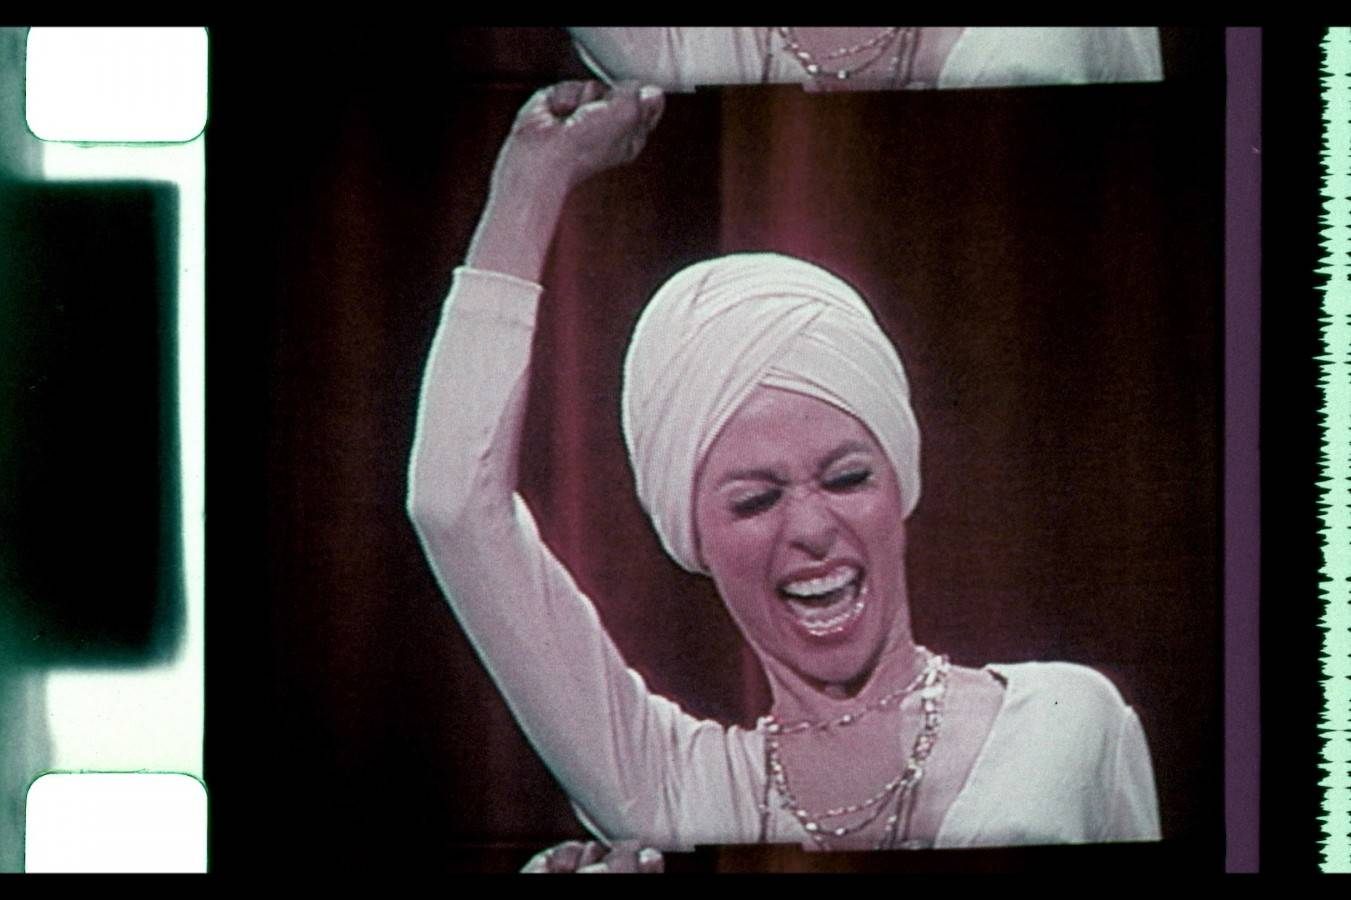 ??  Rita Moreno: Just a girl who decided to go ??  details the life and career of the winner of Emmy, Grammy, Oscar and Tony awards.  (Courtesy of the roadside attractions)